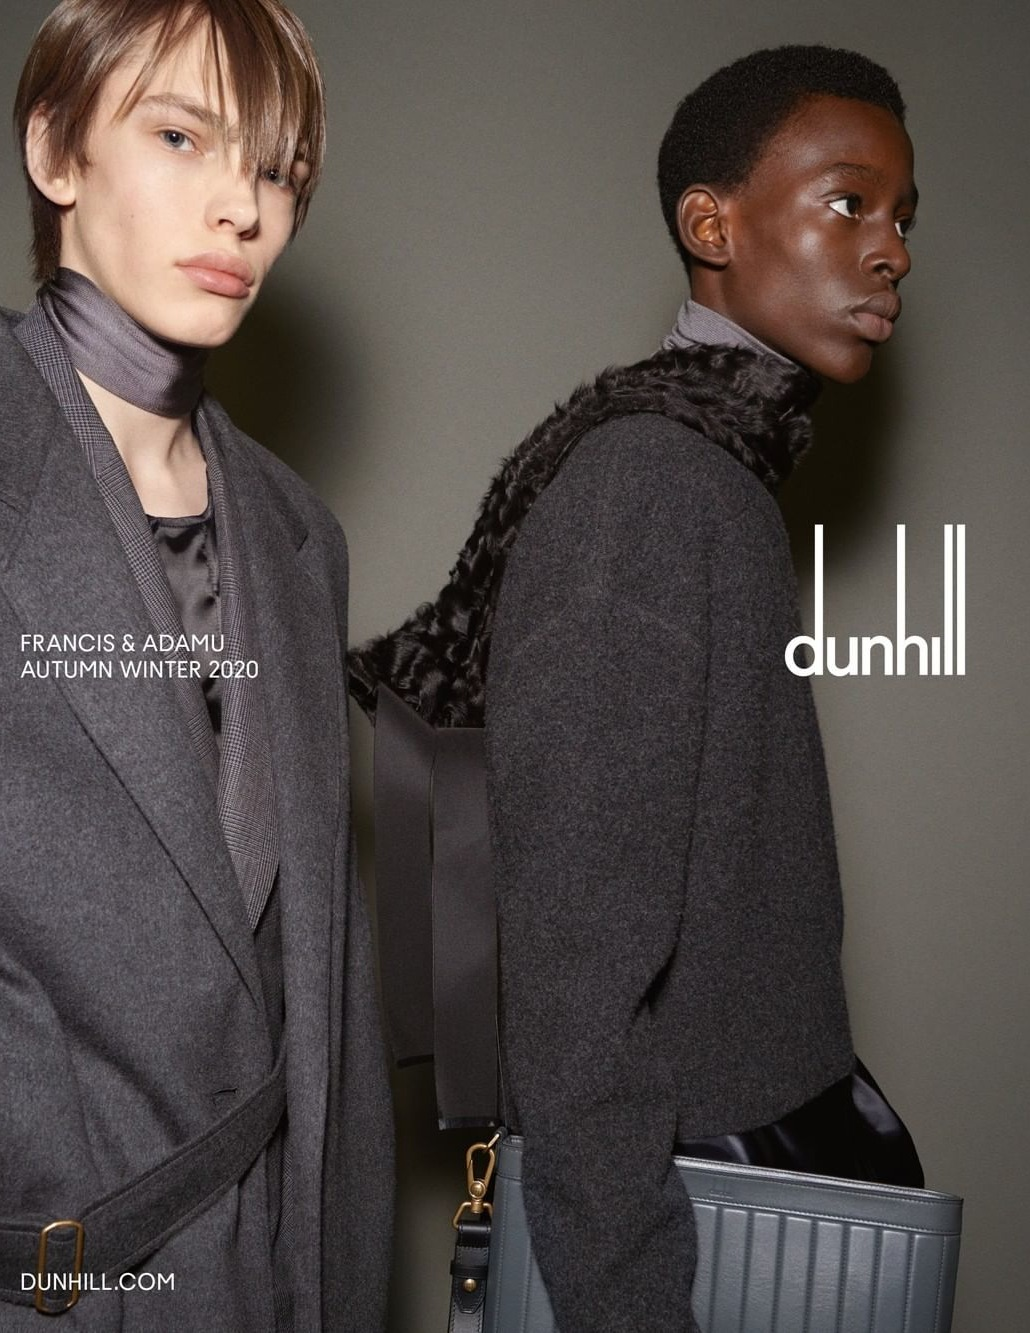 Dunhill Fall/Winter 2020.21 Campaign